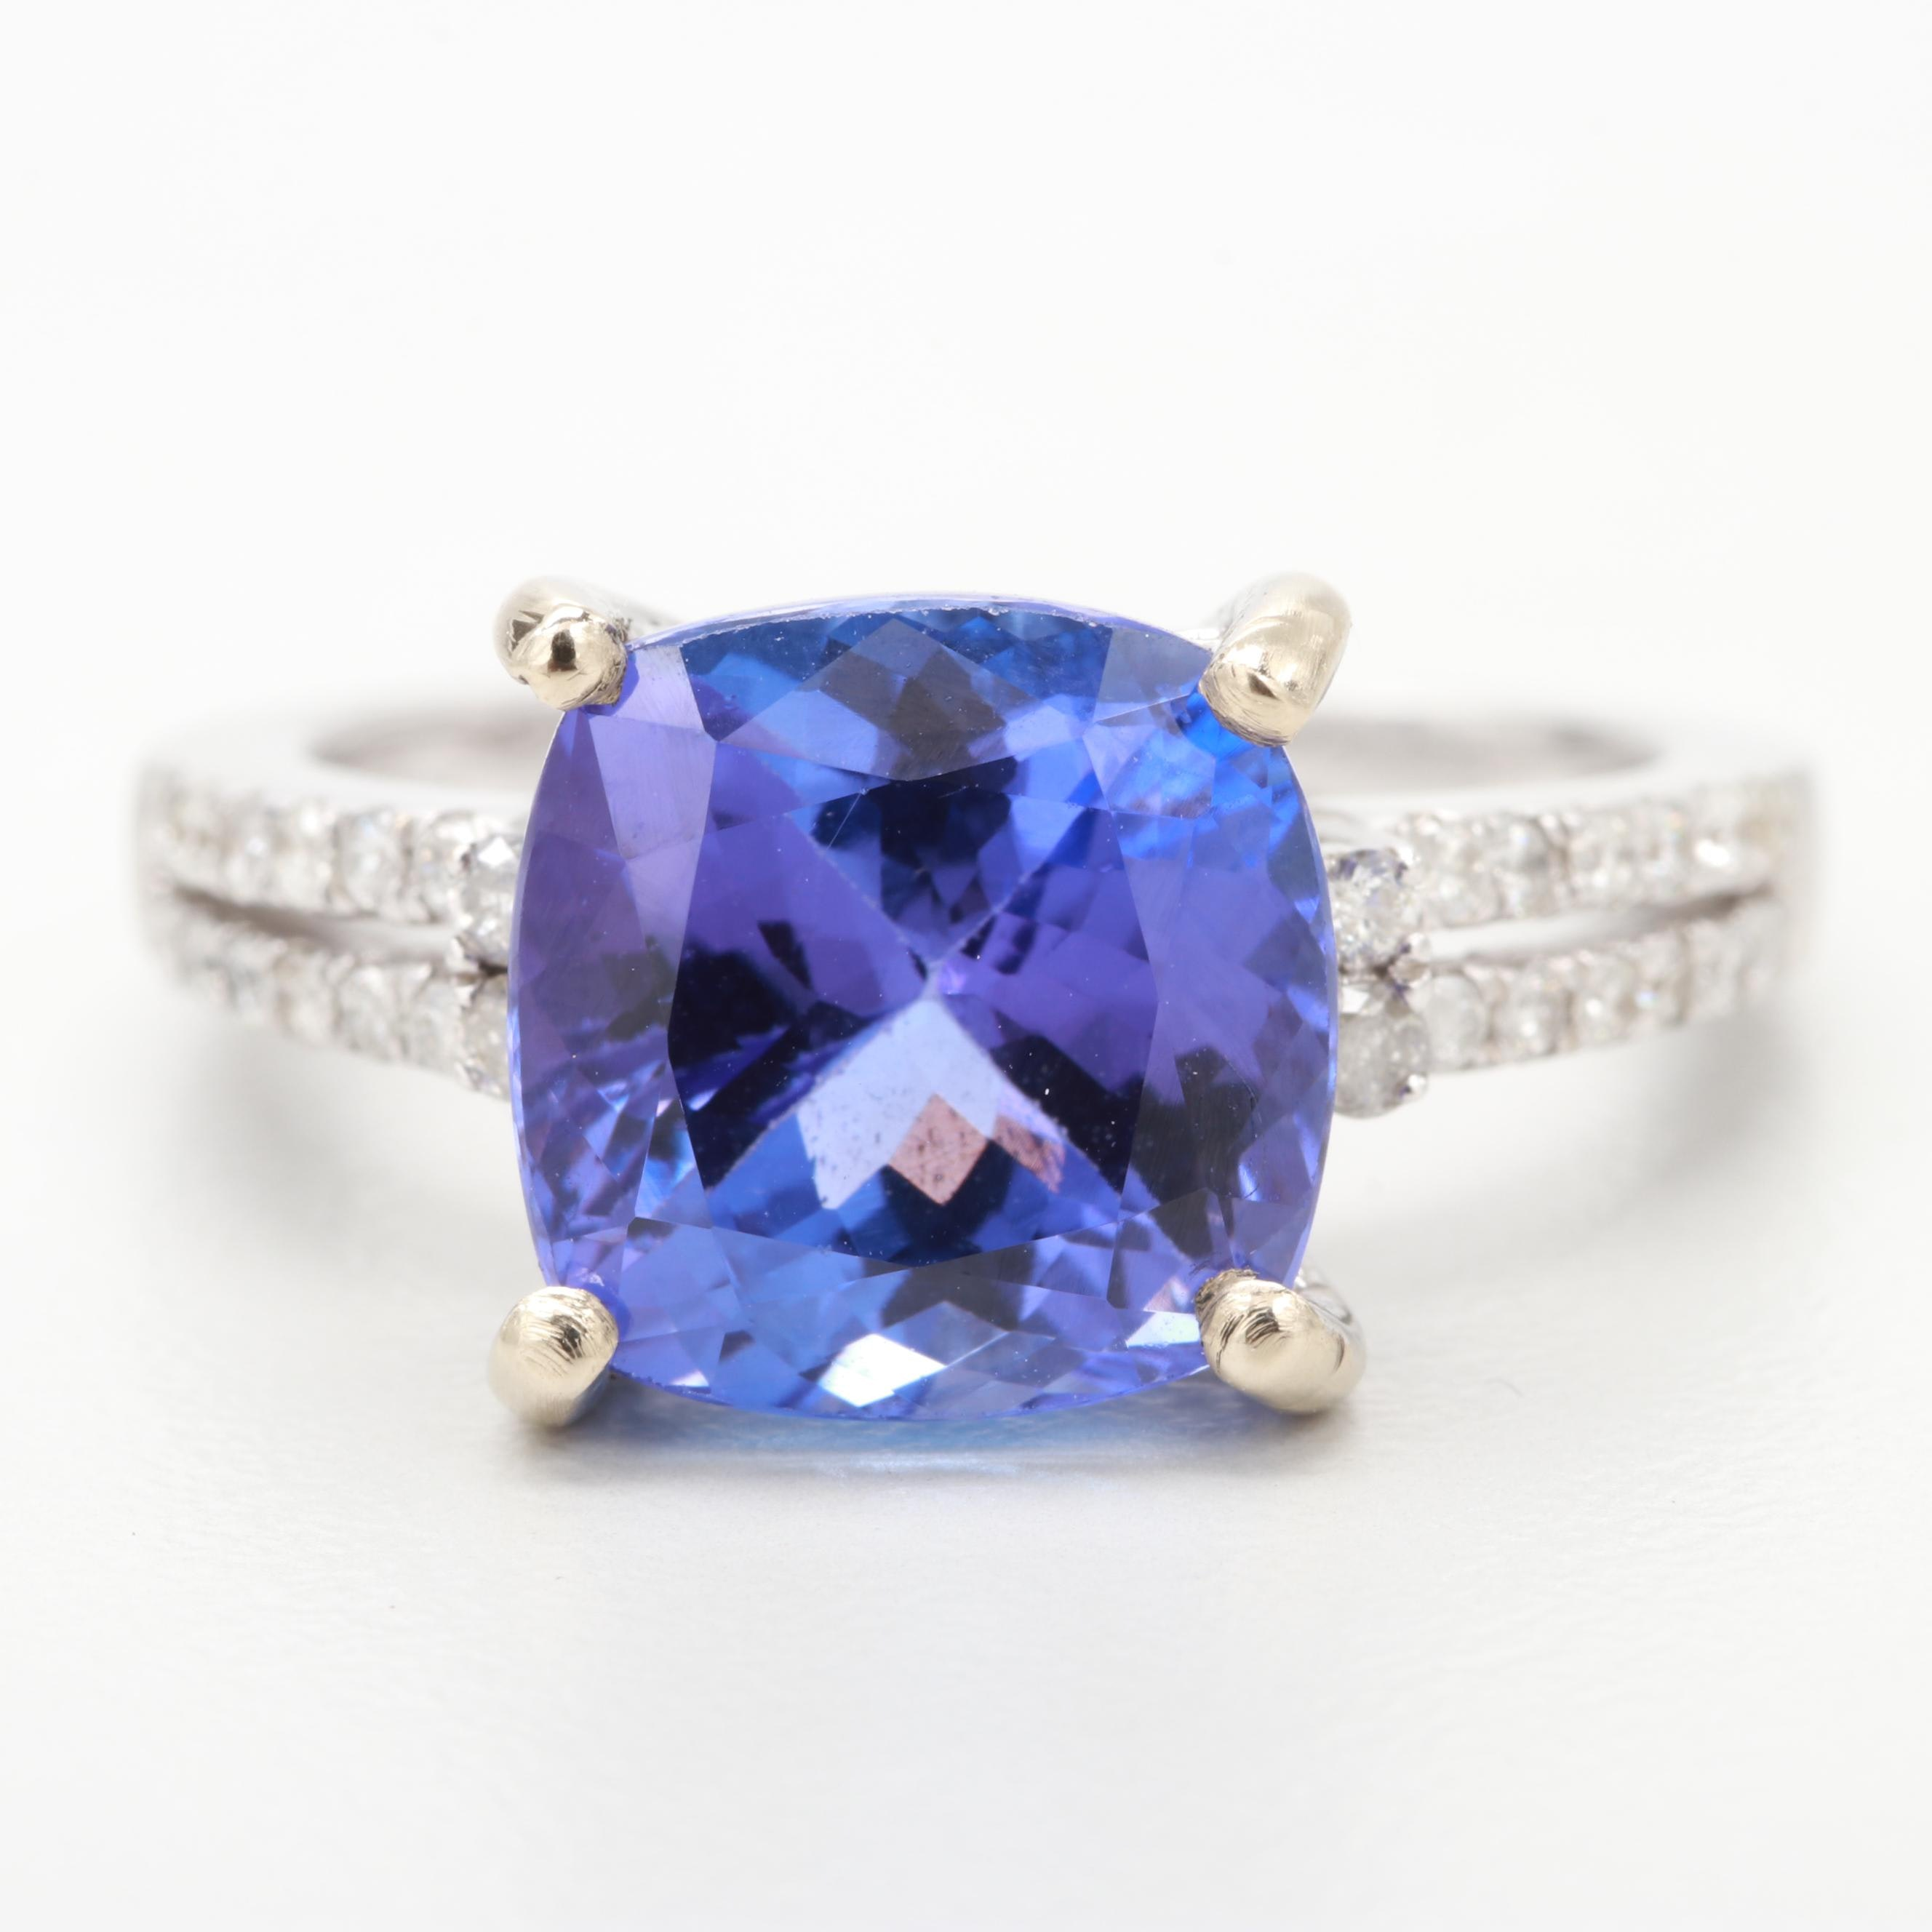 14K White Gold 4.16 CT Tanzanite and Diamond Ring